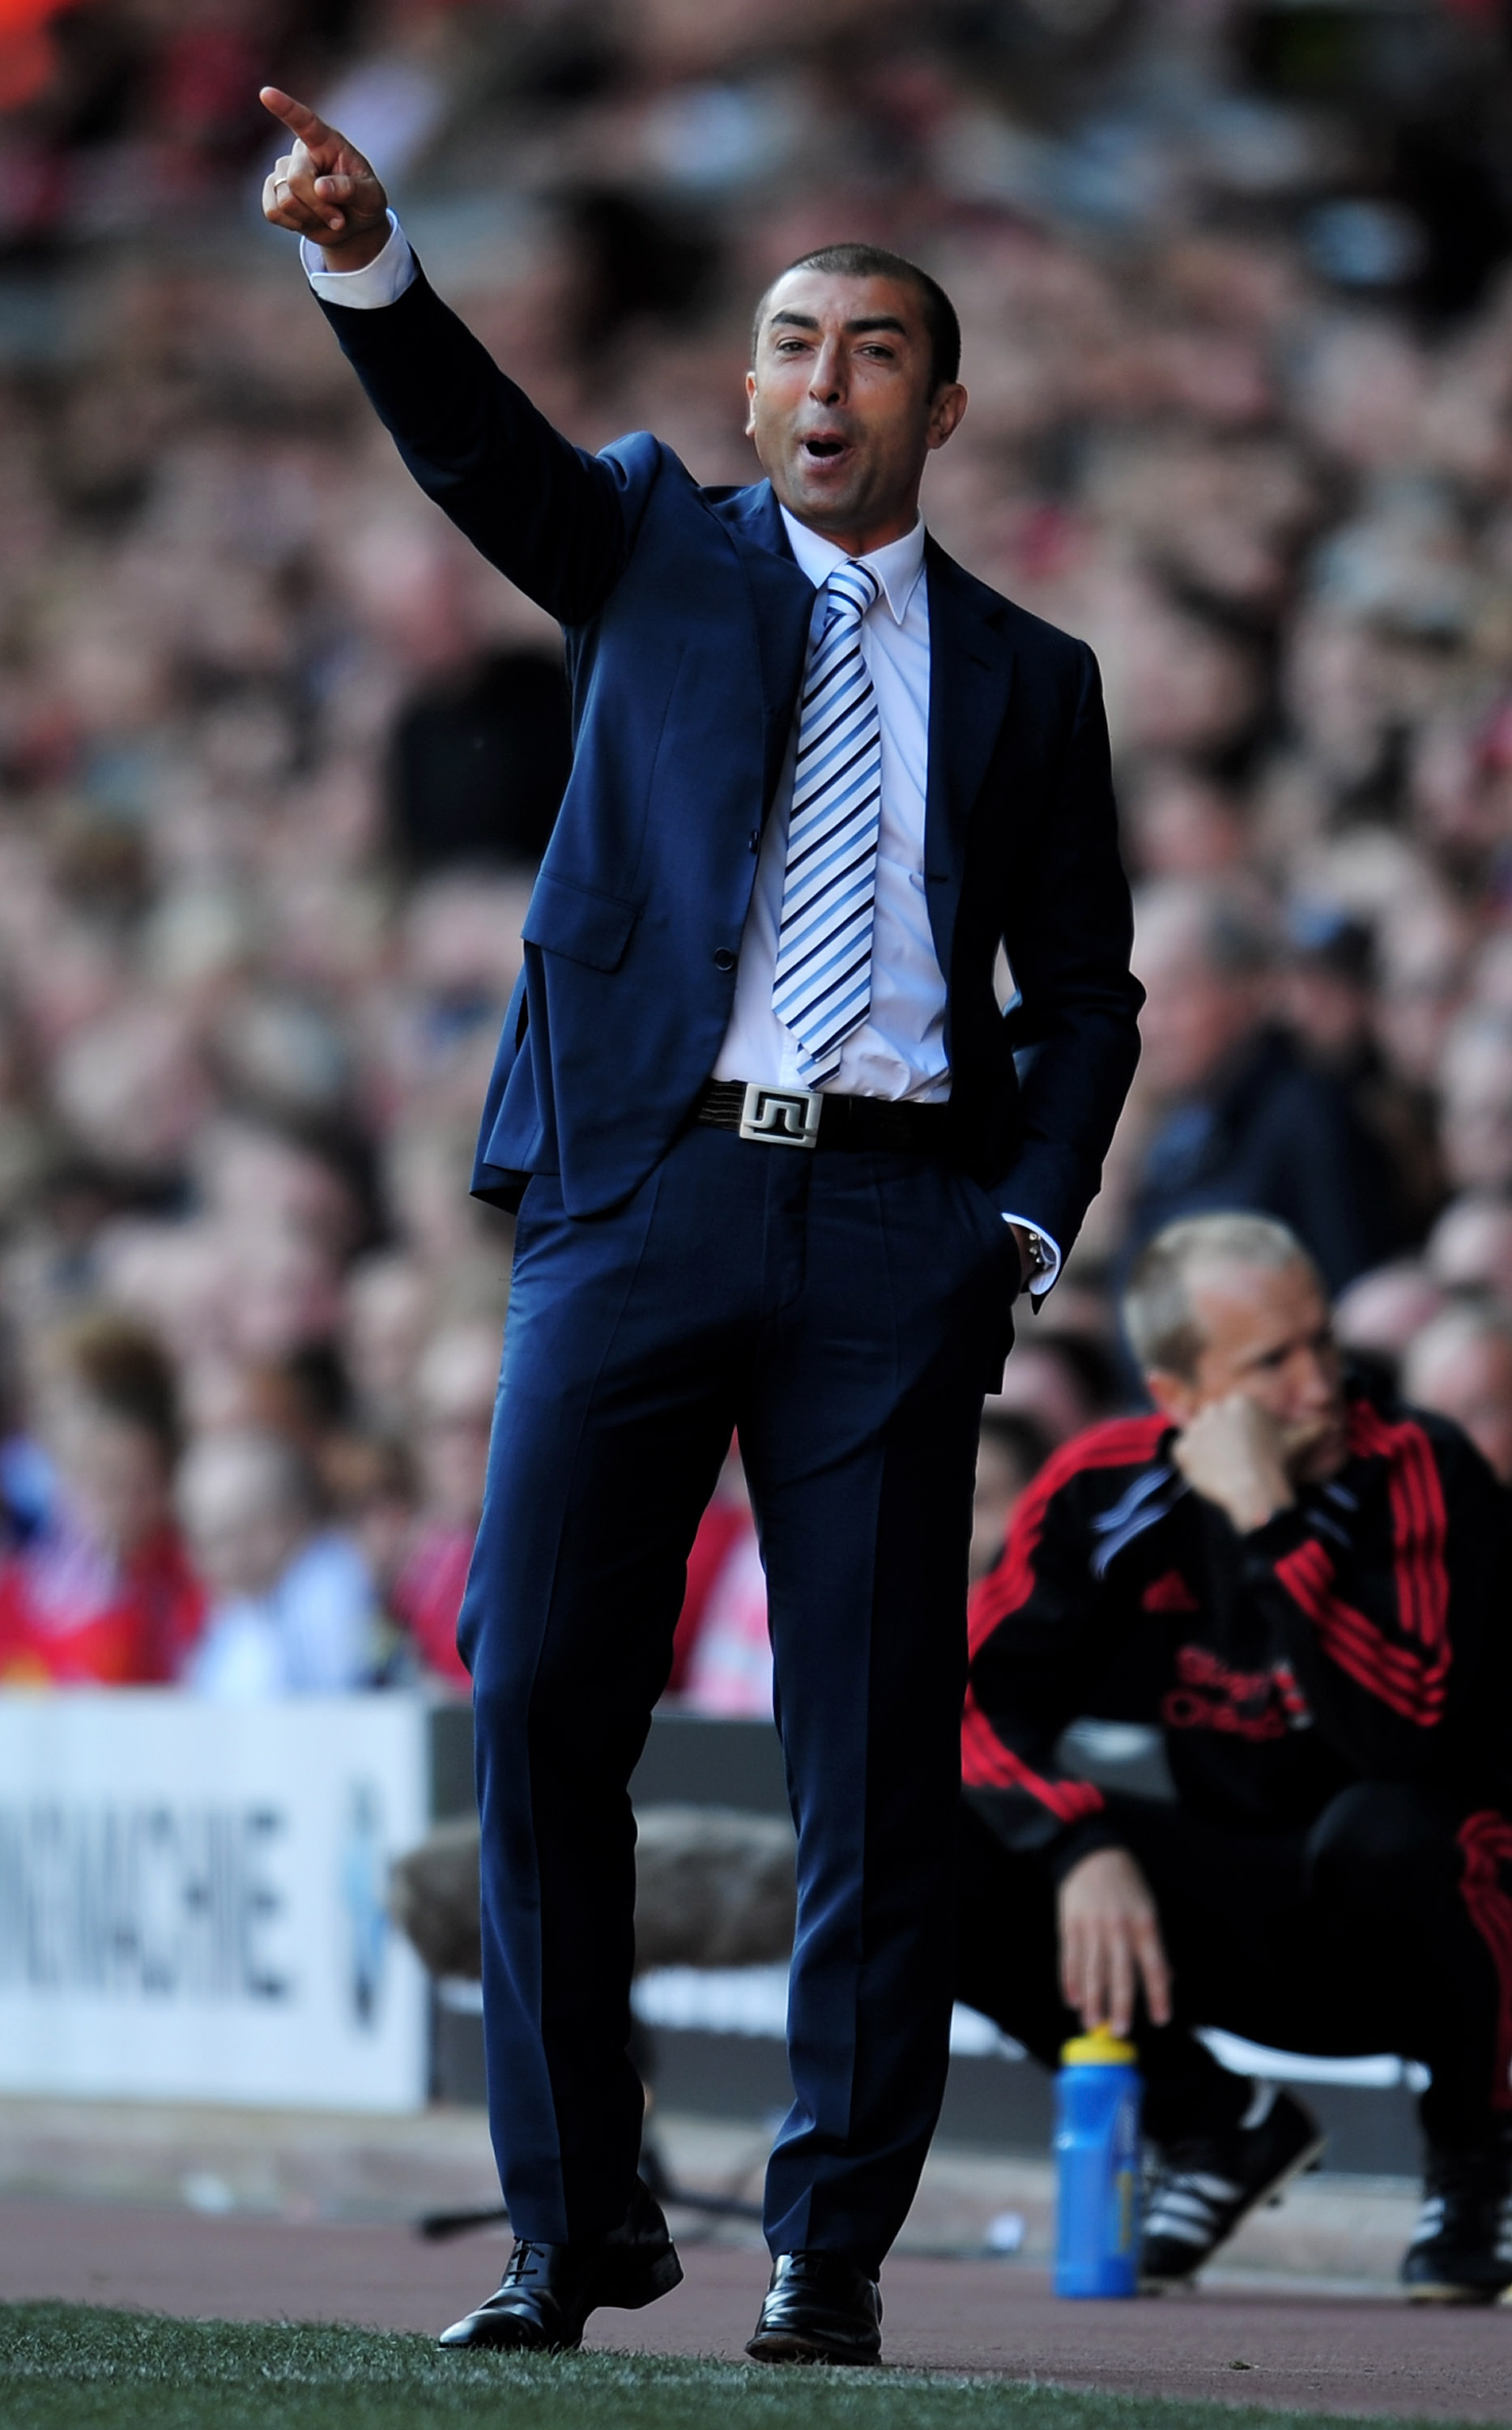 LIVERPOOL, ENGLAND - AUGUST 29:  West Bromwich Albion Manager Roberto Di Matteo issues instructions during the Barclays Premier League match between Liverpool and West Bromwich Albion at Anfield on August 29, 2010 in Liverpool, England.  (Photo by Shaun B